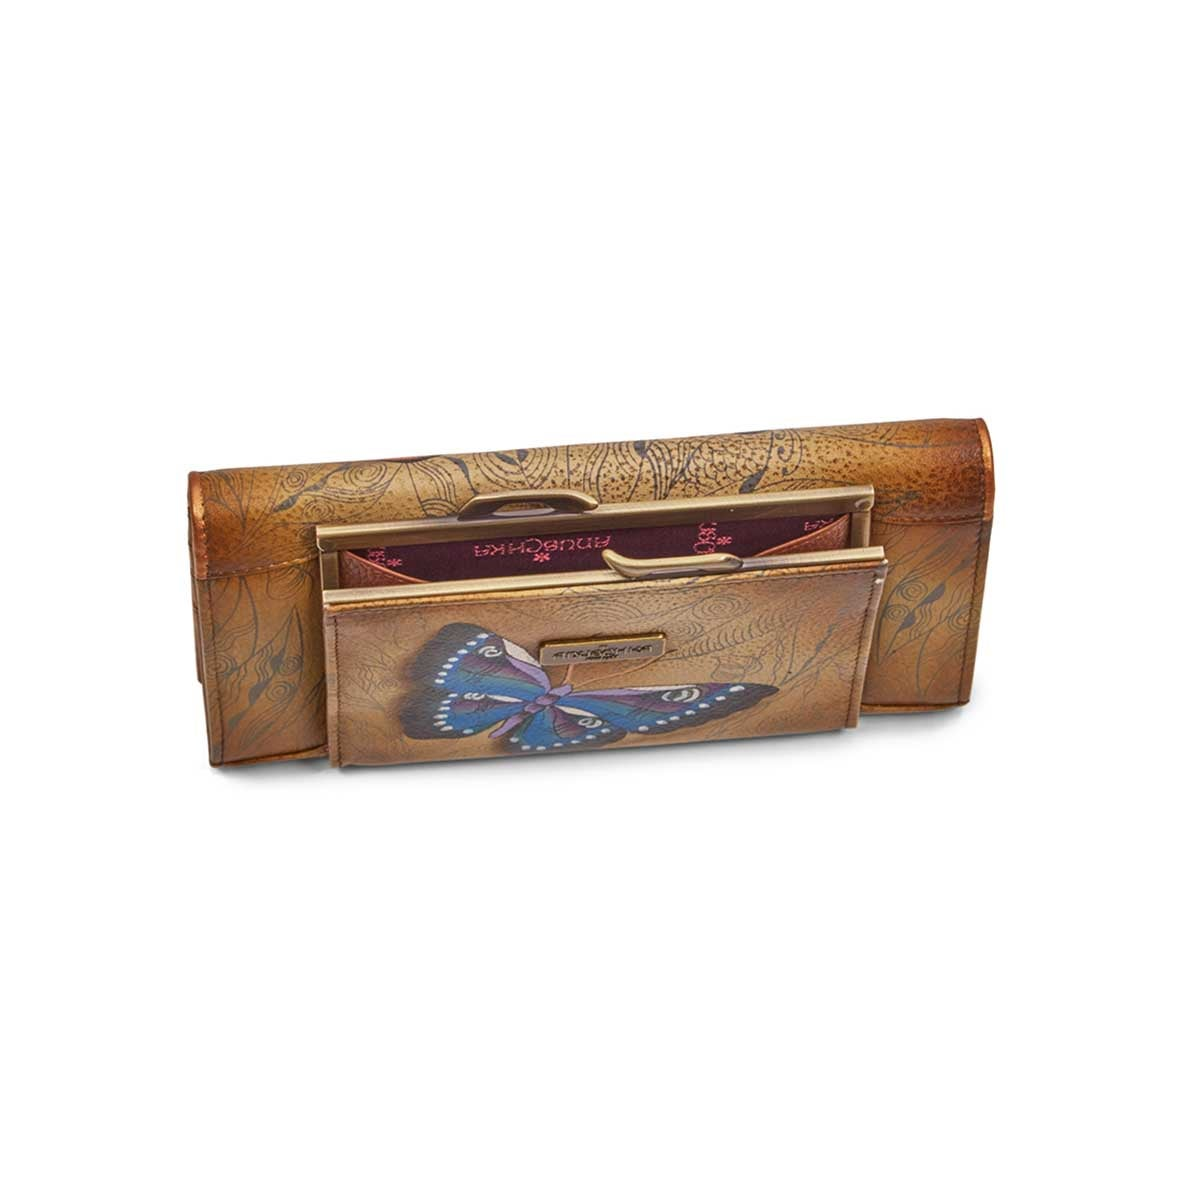 Painted lthr Earth Song wallet